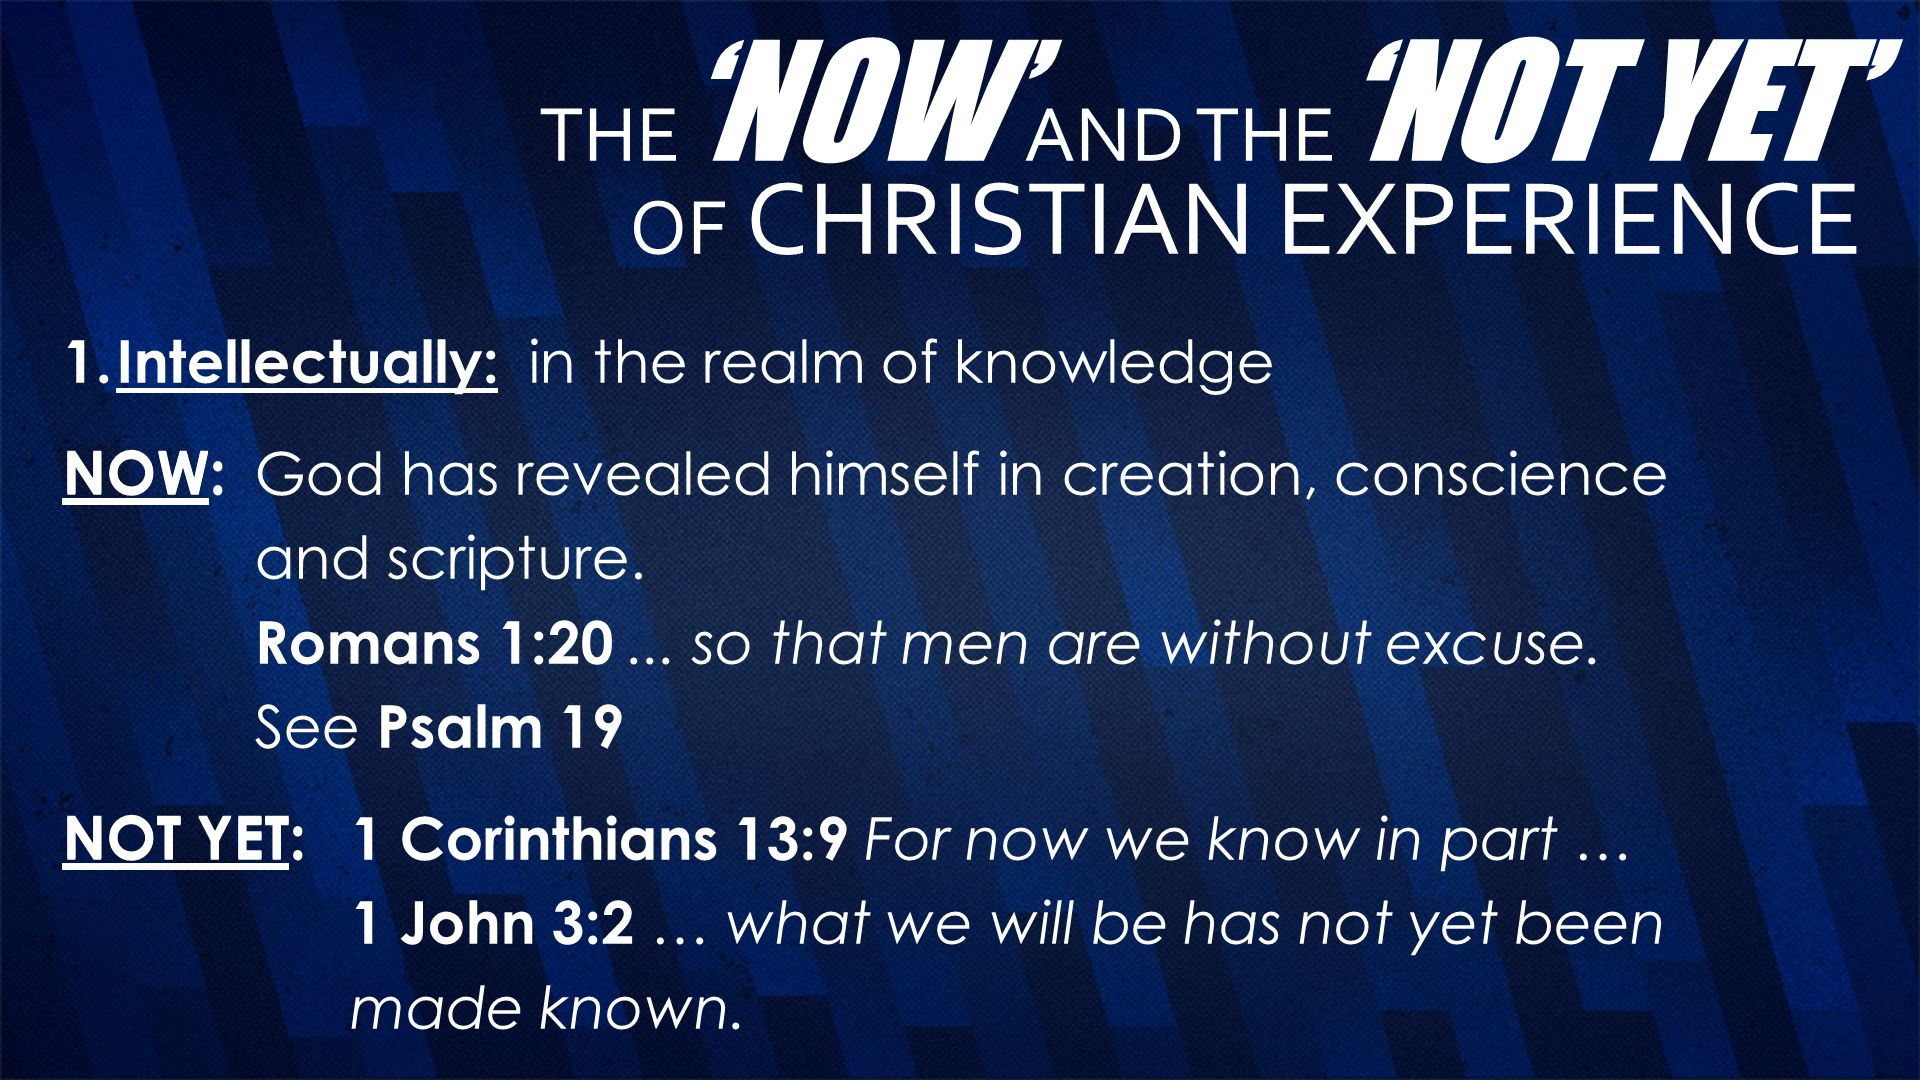 THE'NOW'AND THE'NOT YET' OF CHRISTIAN EXPERIENCE